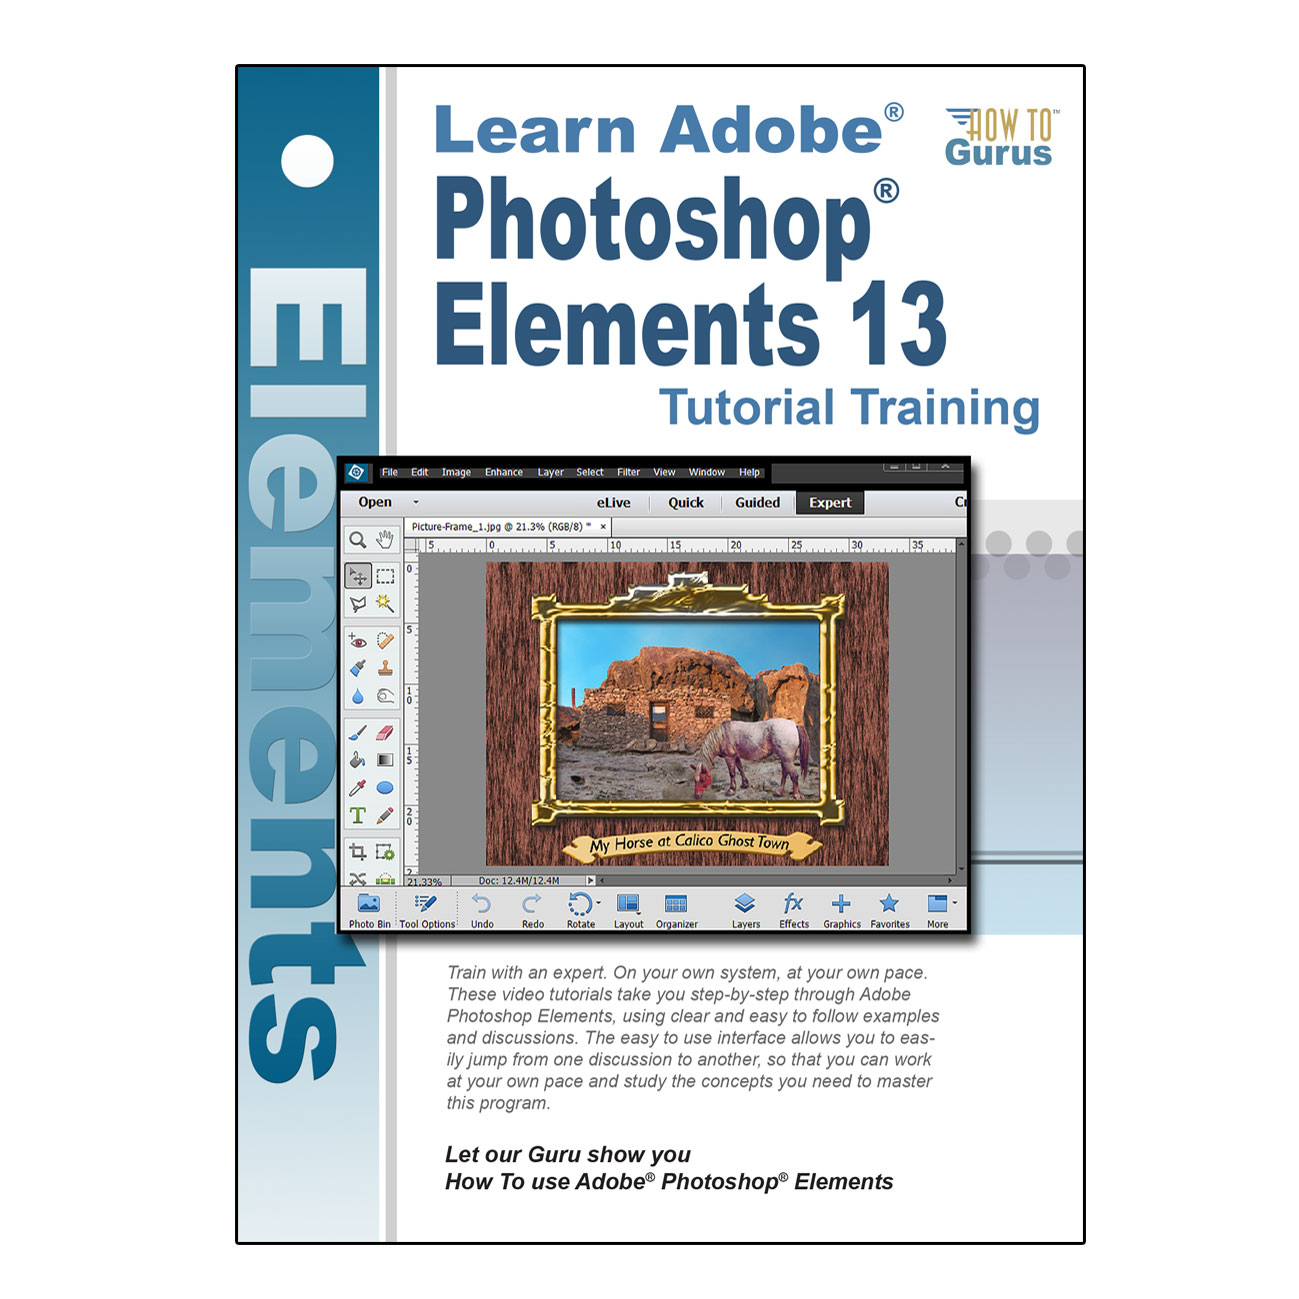 Photoshop elements 13 online course how to gurus baditri Image collections